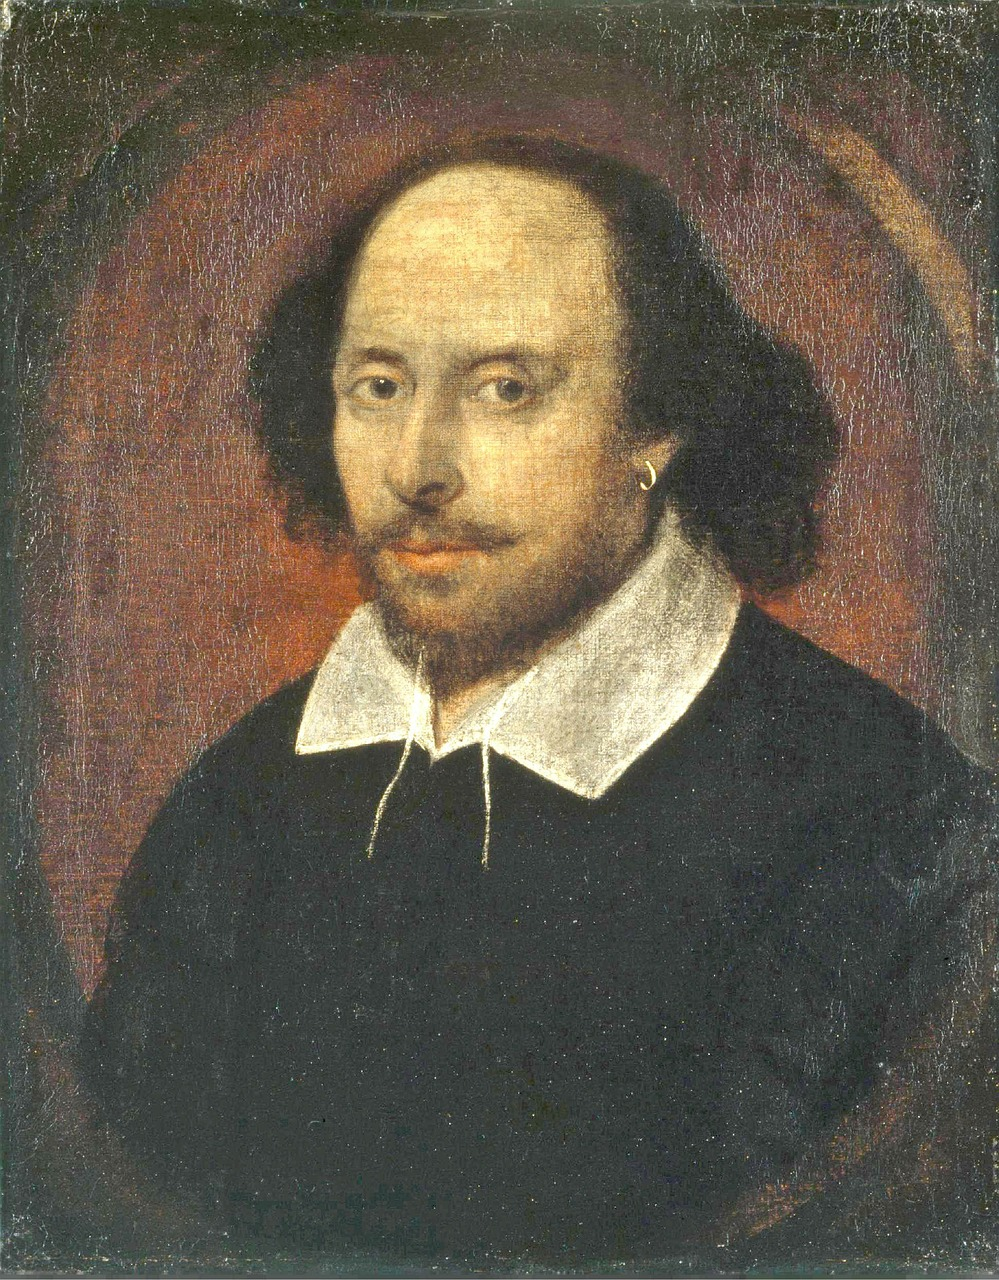 Oil painting of Shakespeare. Credit: Pixabay